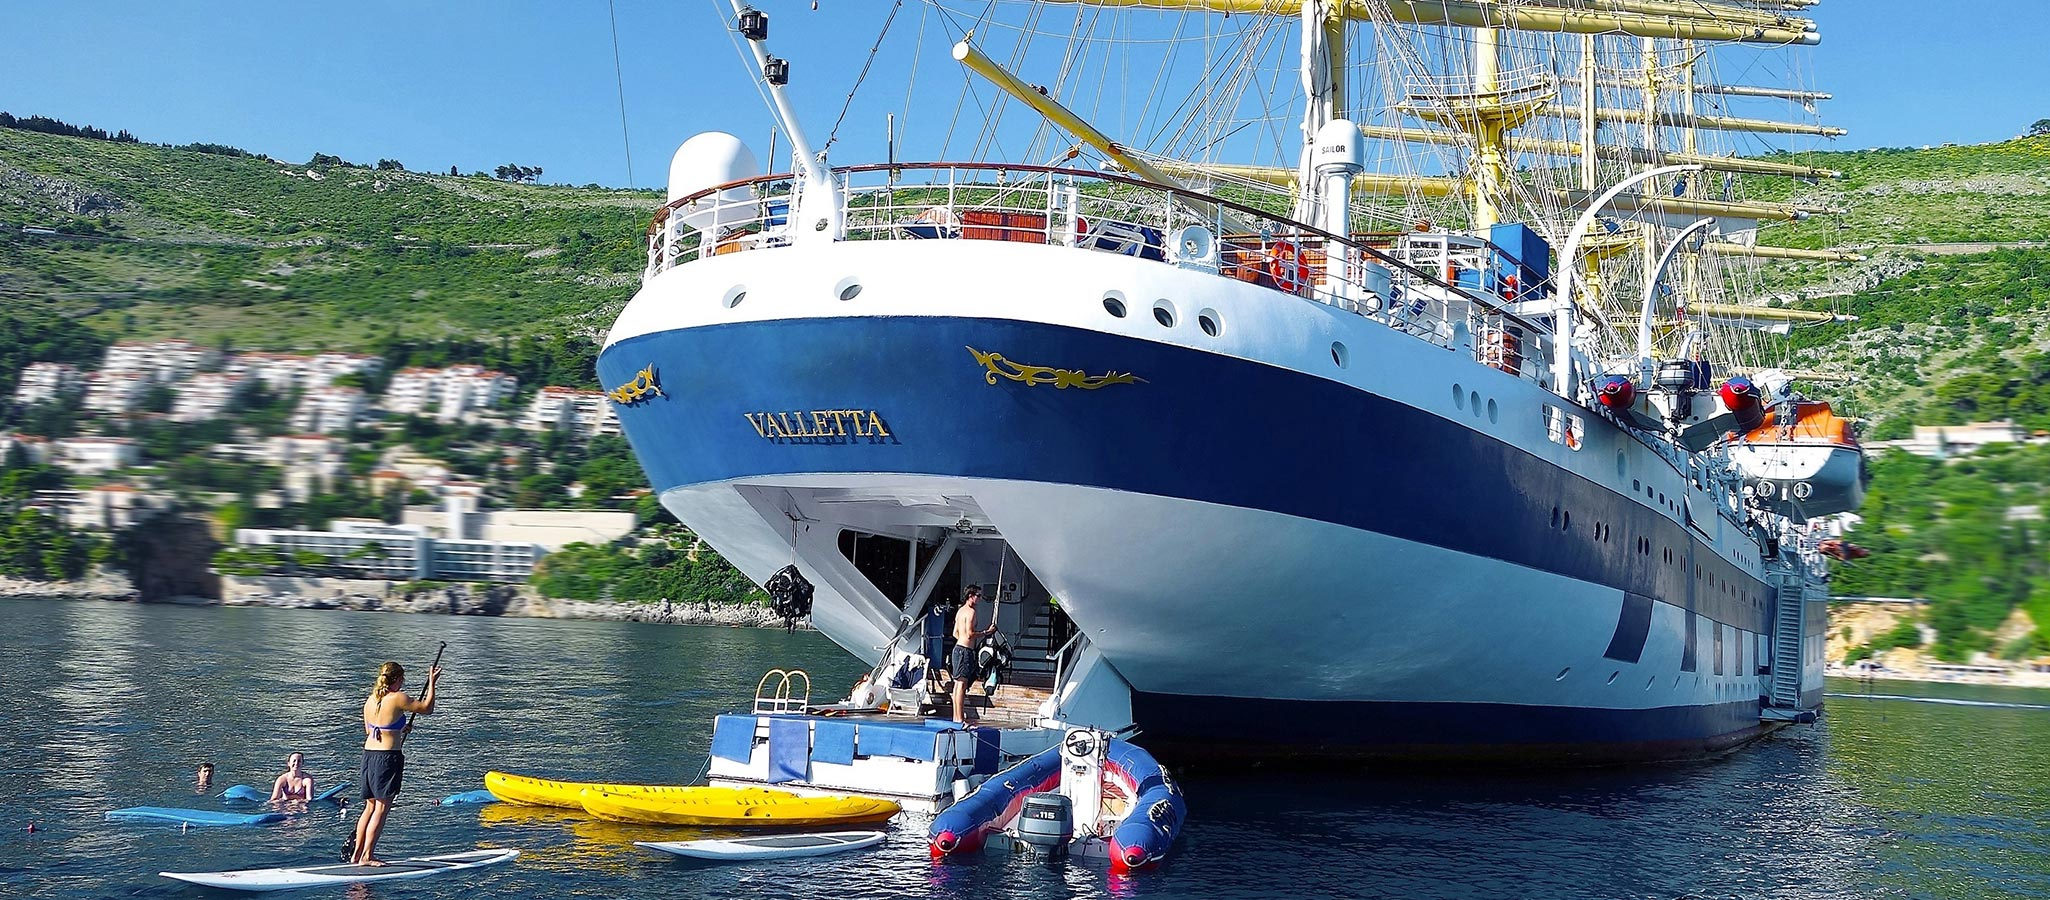 The framework program is on board for you: At anchor, a marina platform is lowered – special swimming fun way out at sea.